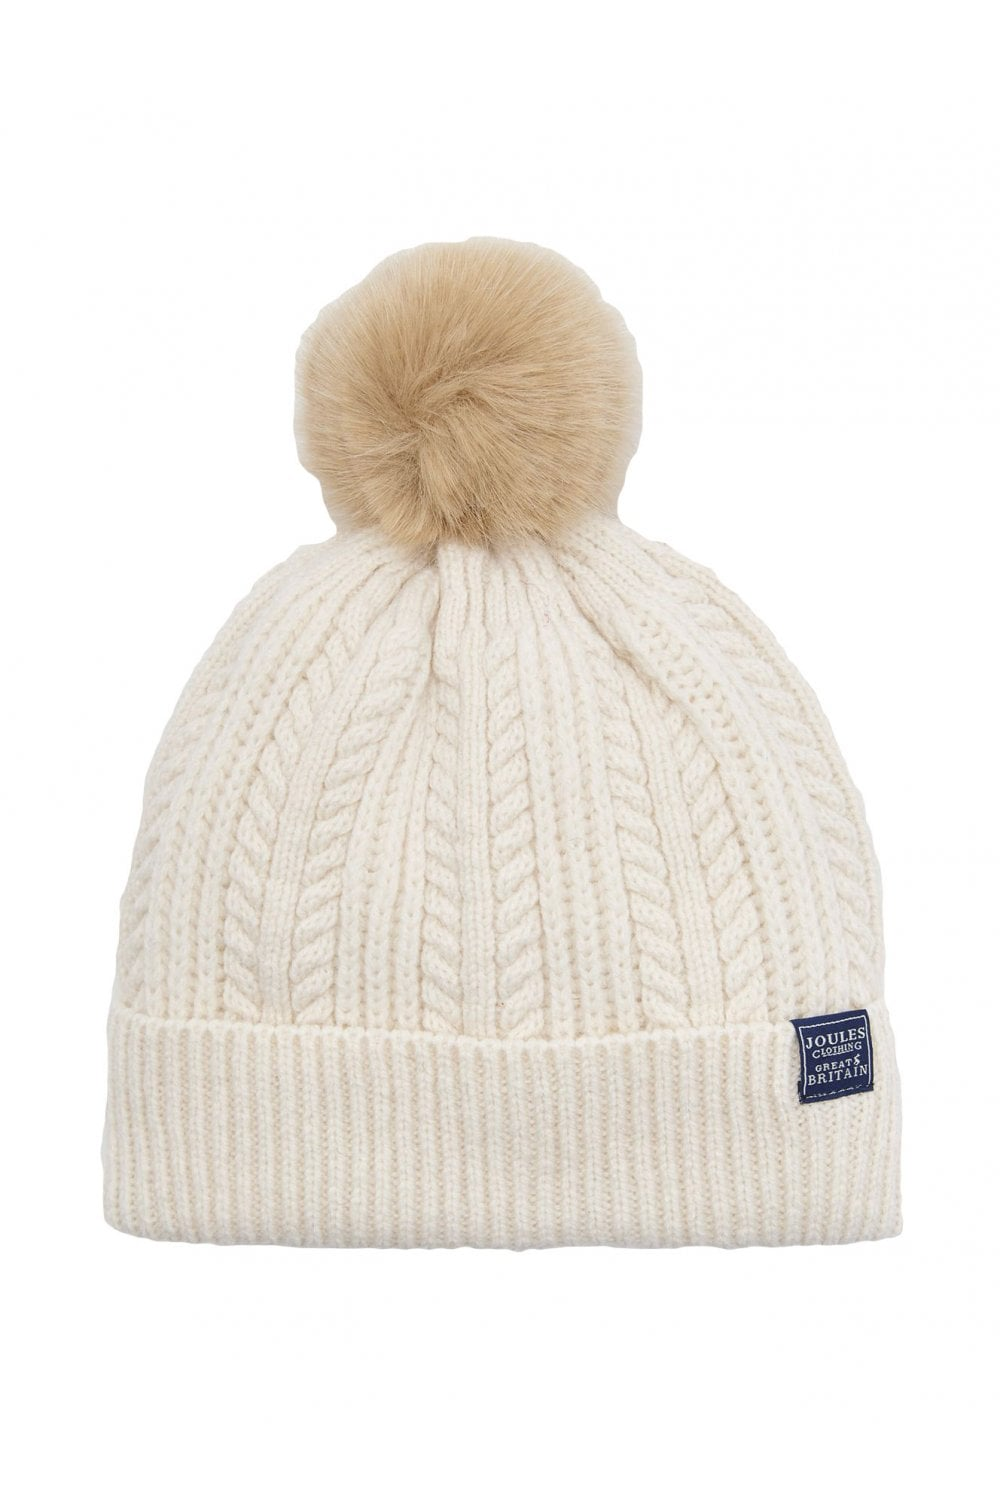 Joules Womens Bobble Cable Knit Hat - Cream - Womenswear from ... ab2de501bc0